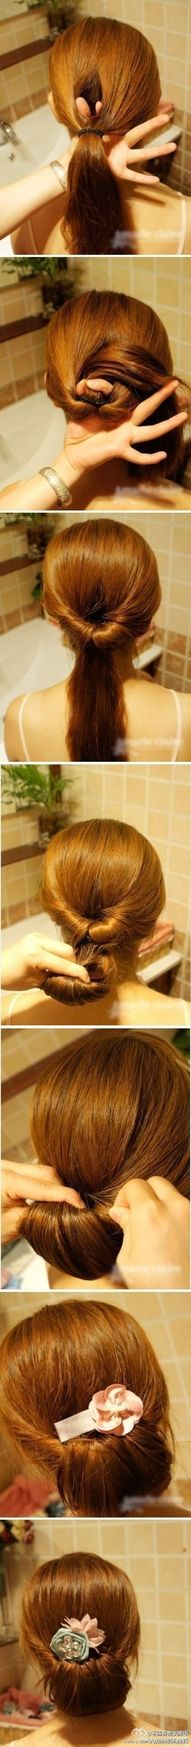 Thats easy! I can never get my hair to look good in a bun... I'm going to do try it right now!